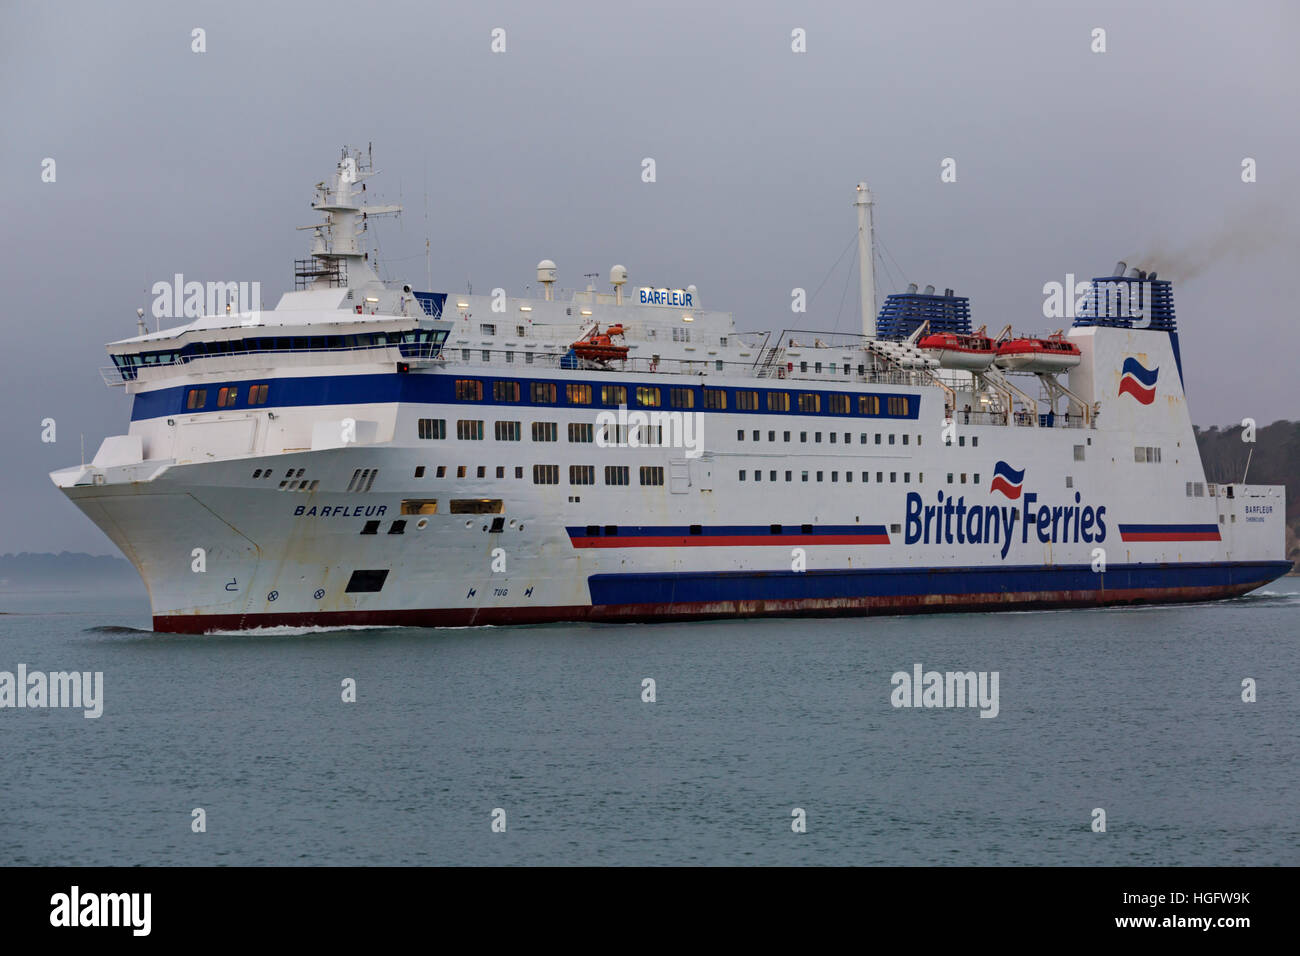 Barfleur cruise ferry ship information brittany ferries - Brittany Ferries Barfleur Leaving Poole Harbour Dorset To Cross The English Channel To Cherbourg On